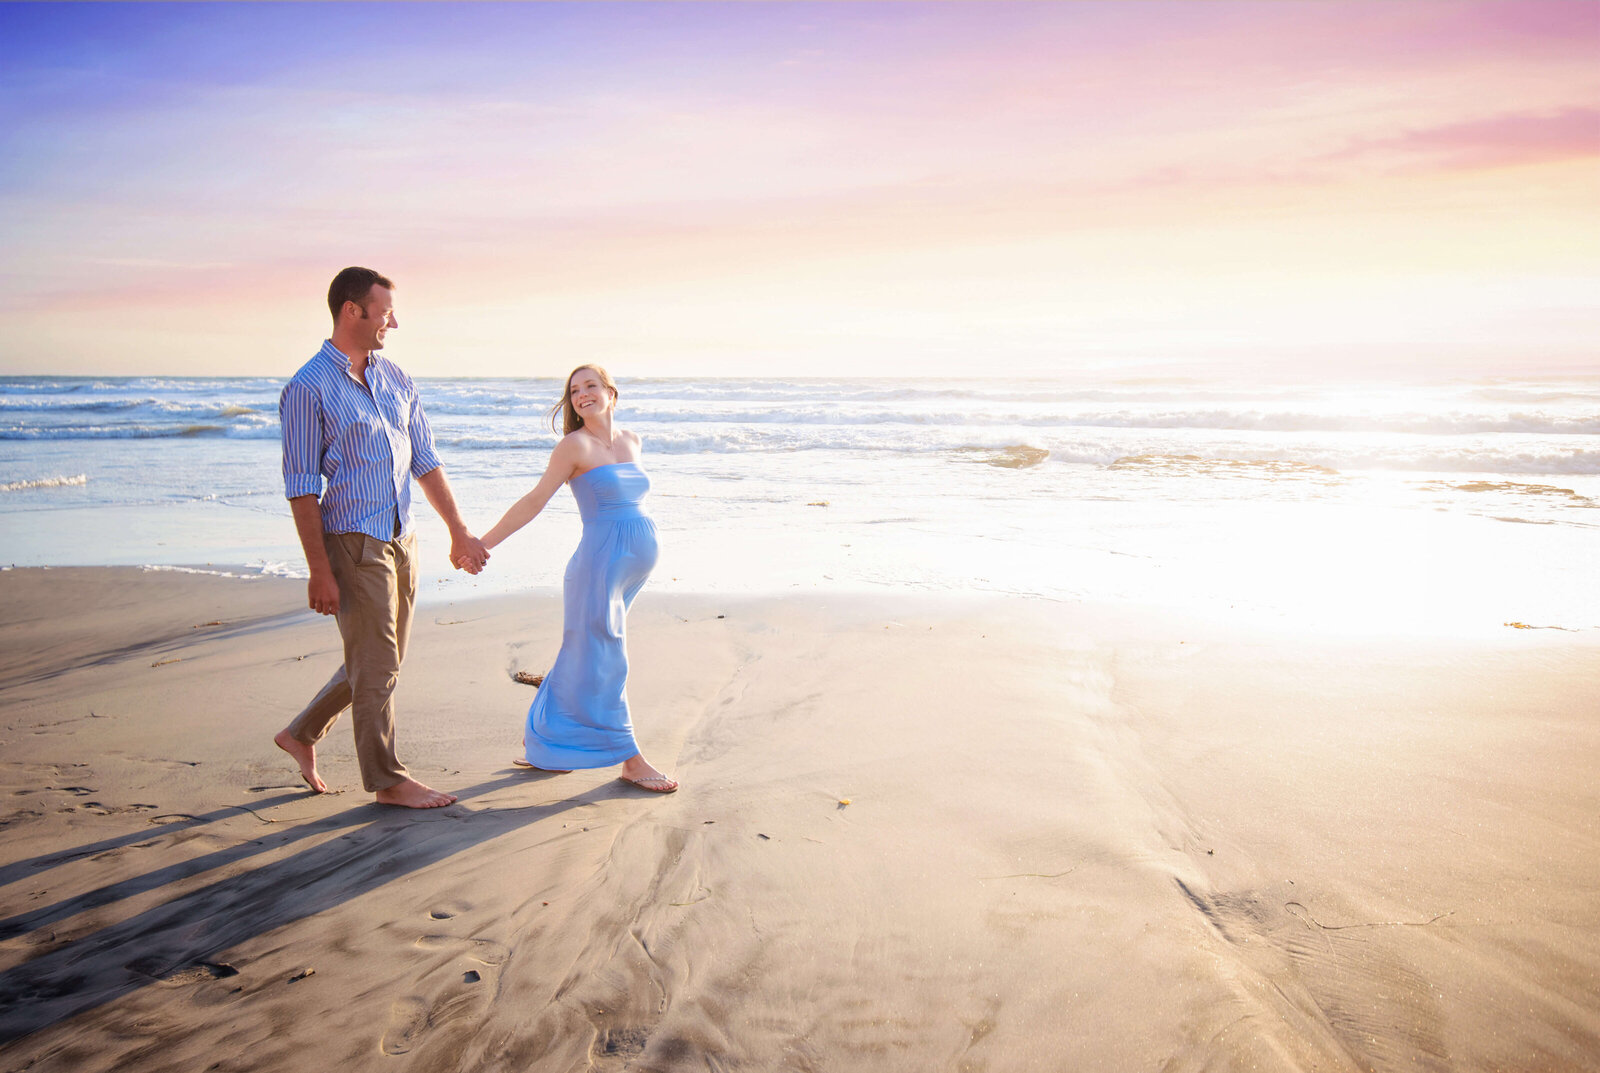 San-diego-maternity-photographer-36